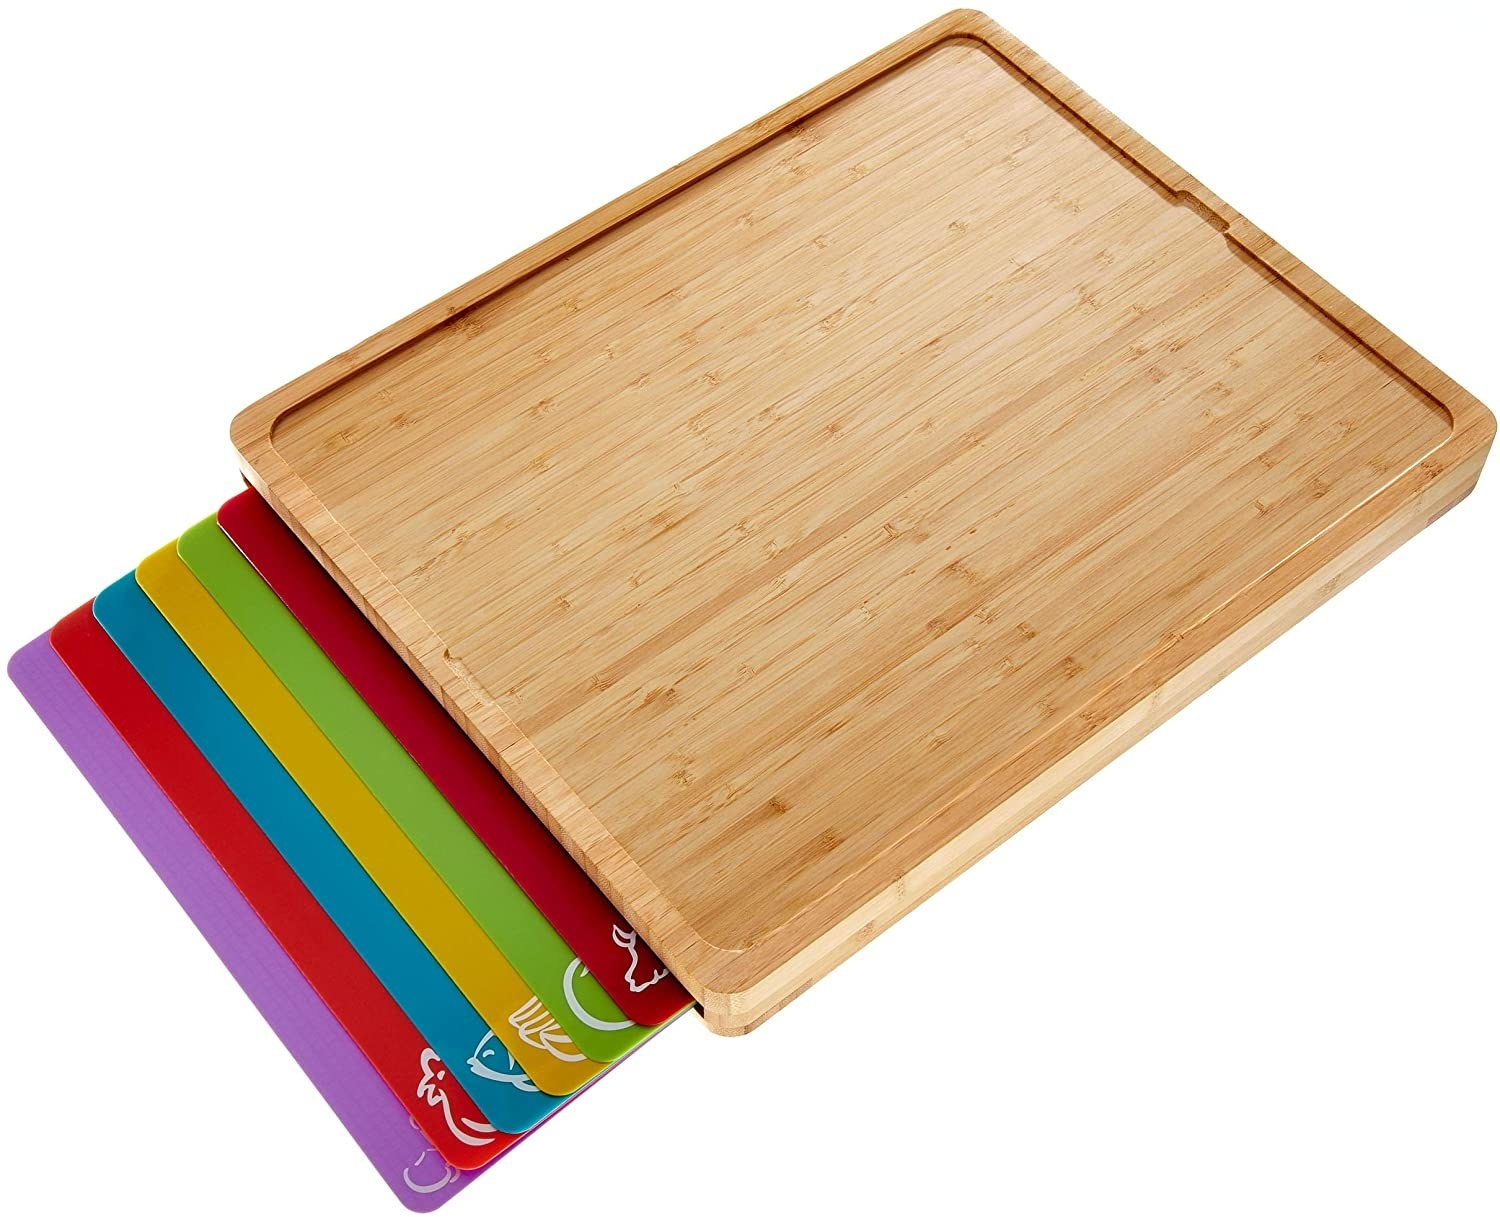 a bamboo cutting board with six colored mats peeking out from an inner slot